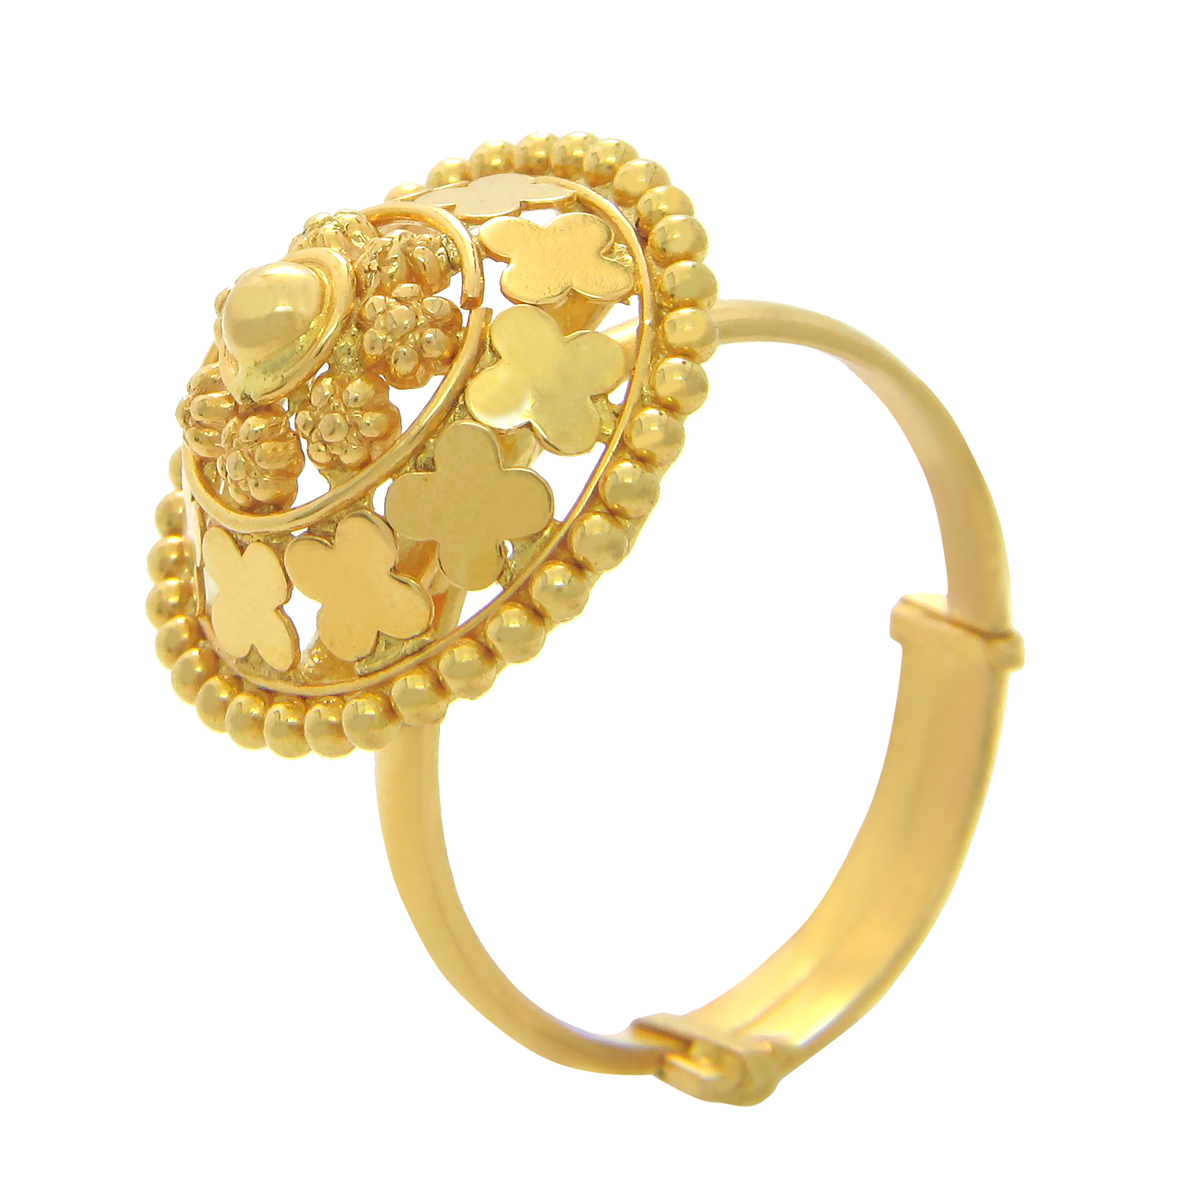 Popley 22Kt Gold Bandhan Ring - A80